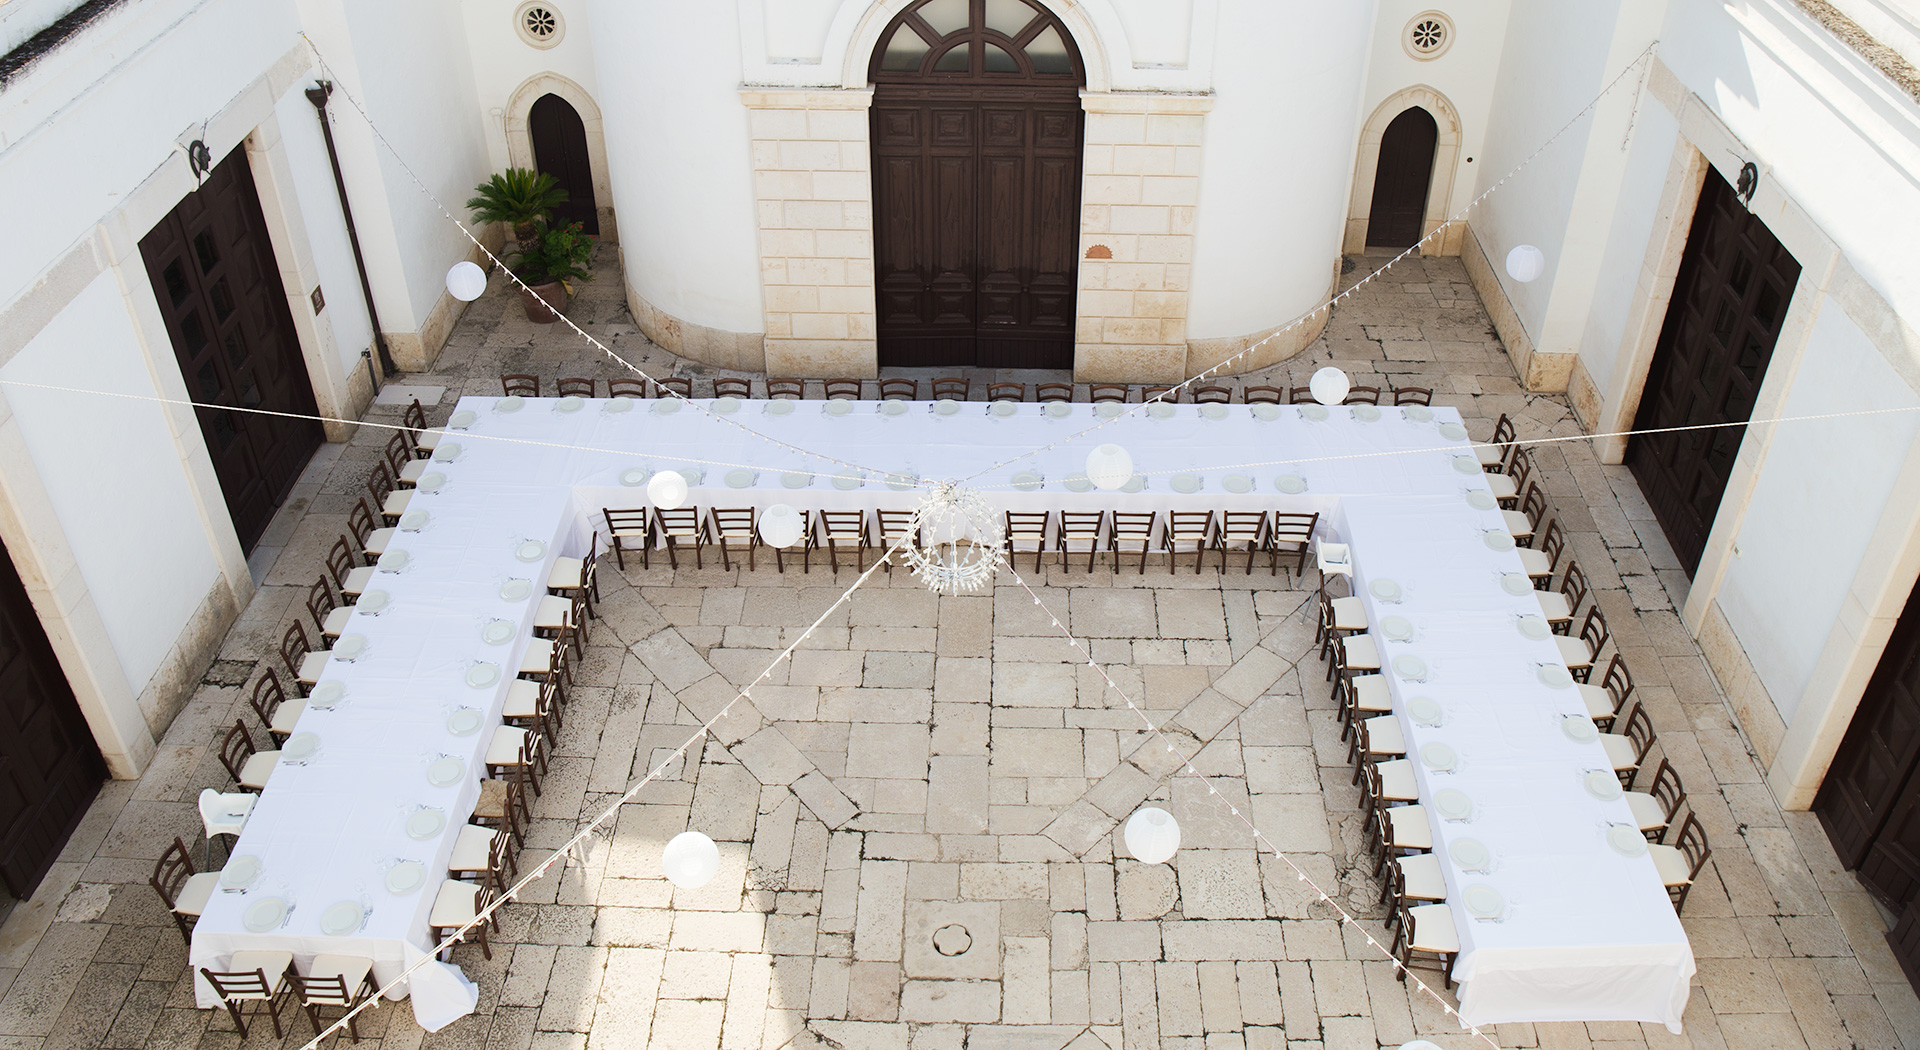 Location matrimoni Puglia. Matrimonio in masseria